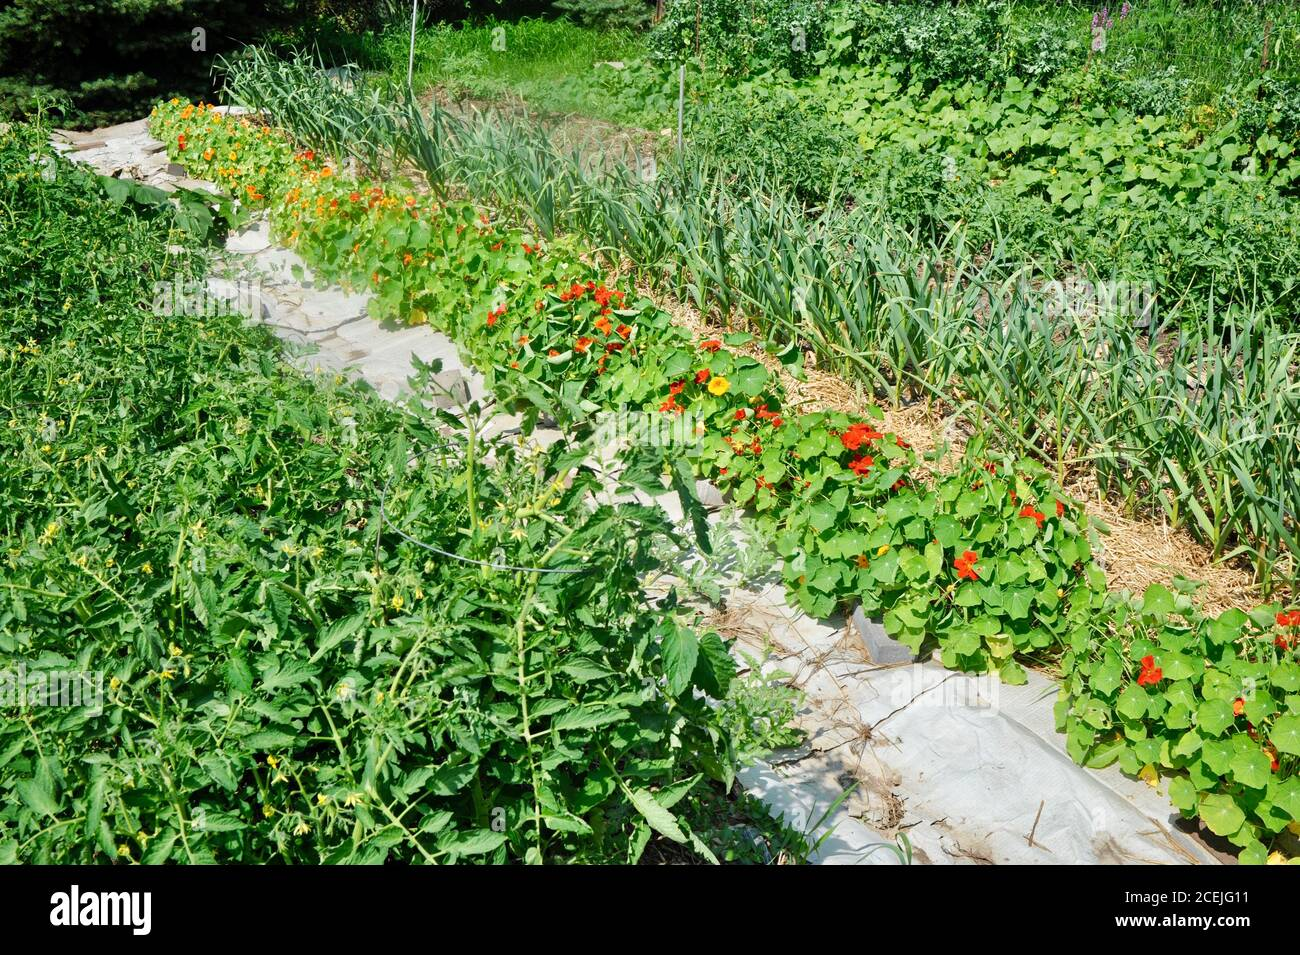 Rows of various healthy crops including garlic, nasturtiums, tomatoes and cucumbers, on a small farm in Browntown, Wisconsin, USA Stock Photo